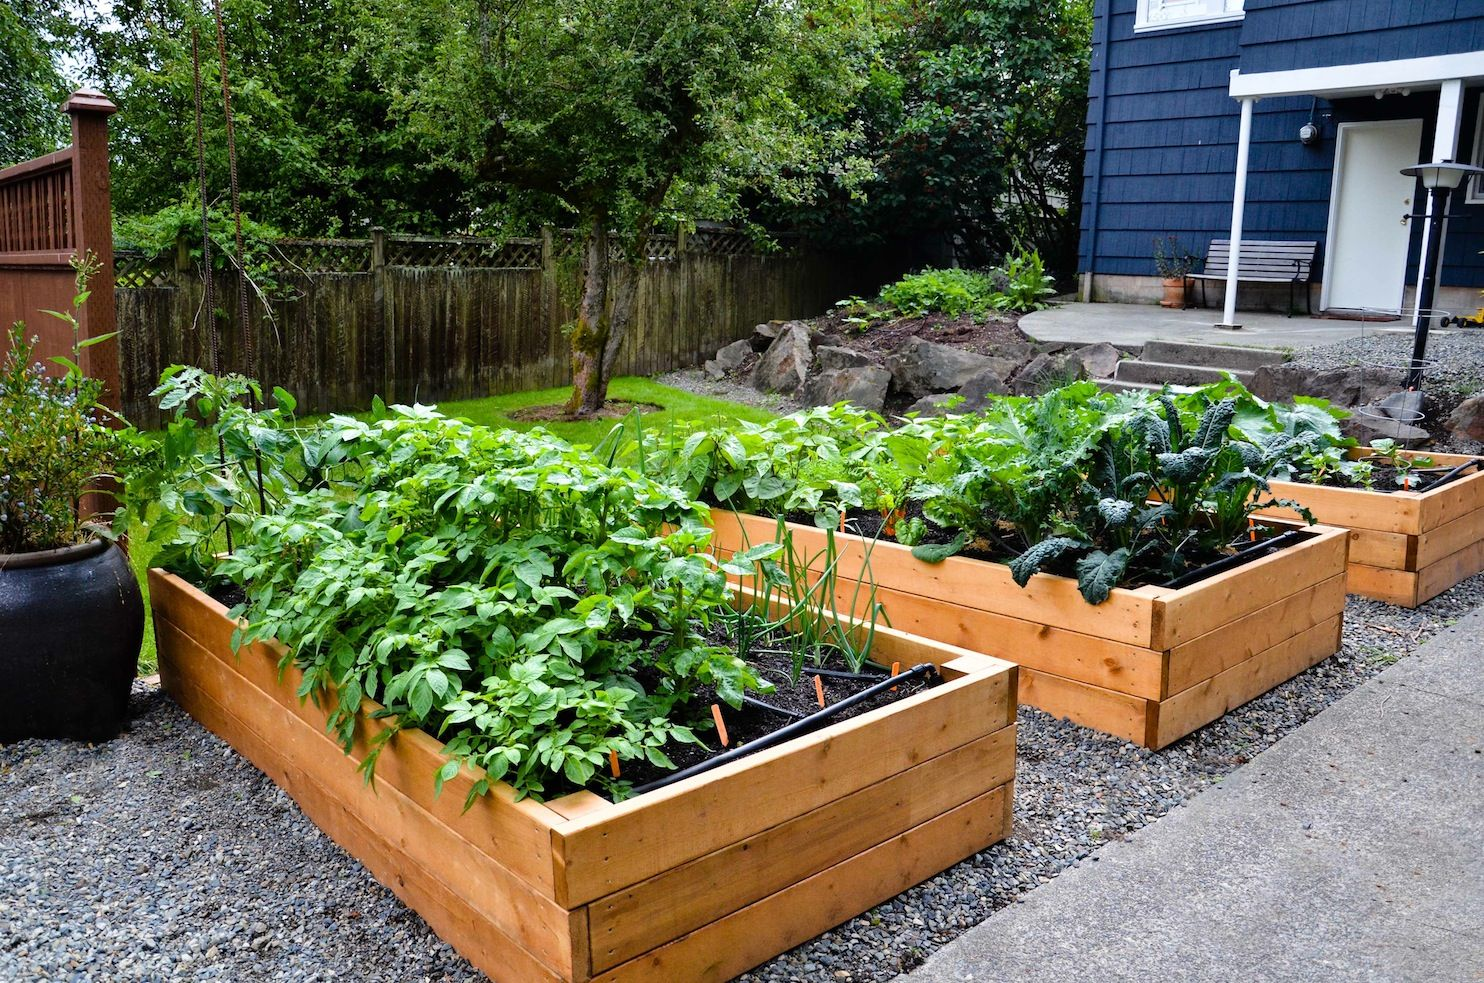 To Get More Detailed Information About This Incredible Lofty Vegetable  Planter Box In Backyard Garden Ideas · Raised Garden Bed DesignRaised ...